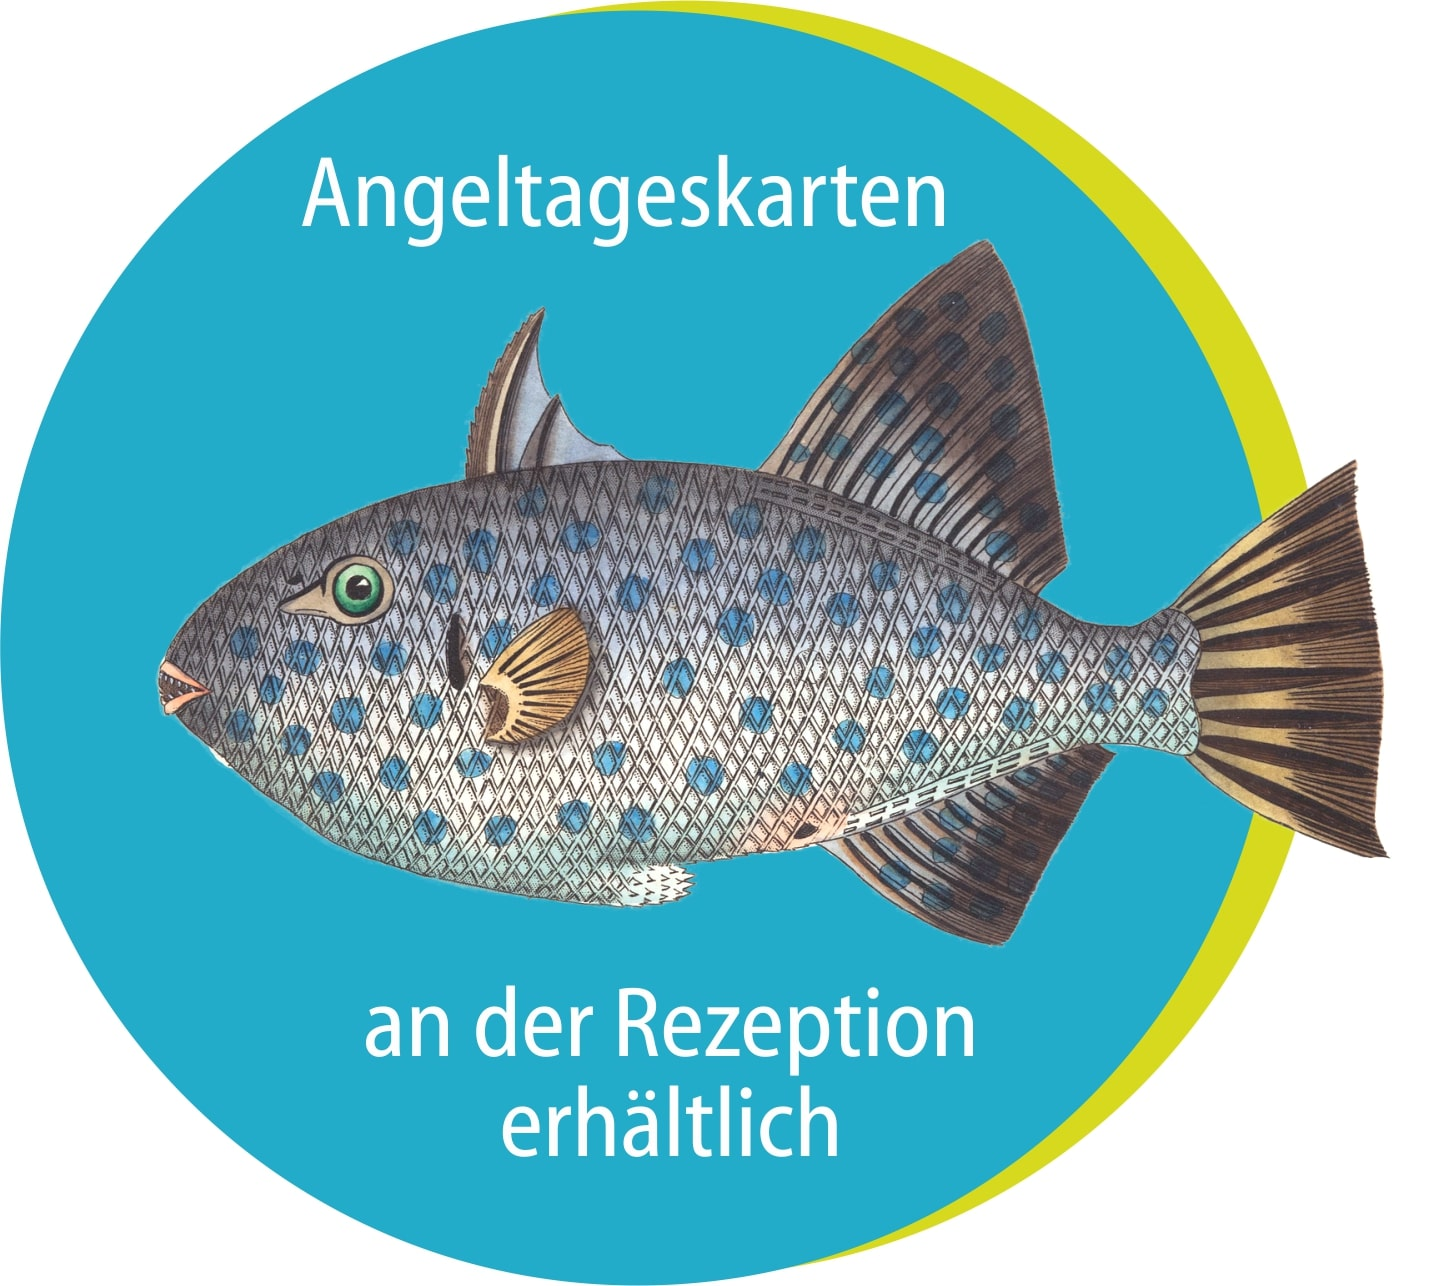 angeltageskarten-button